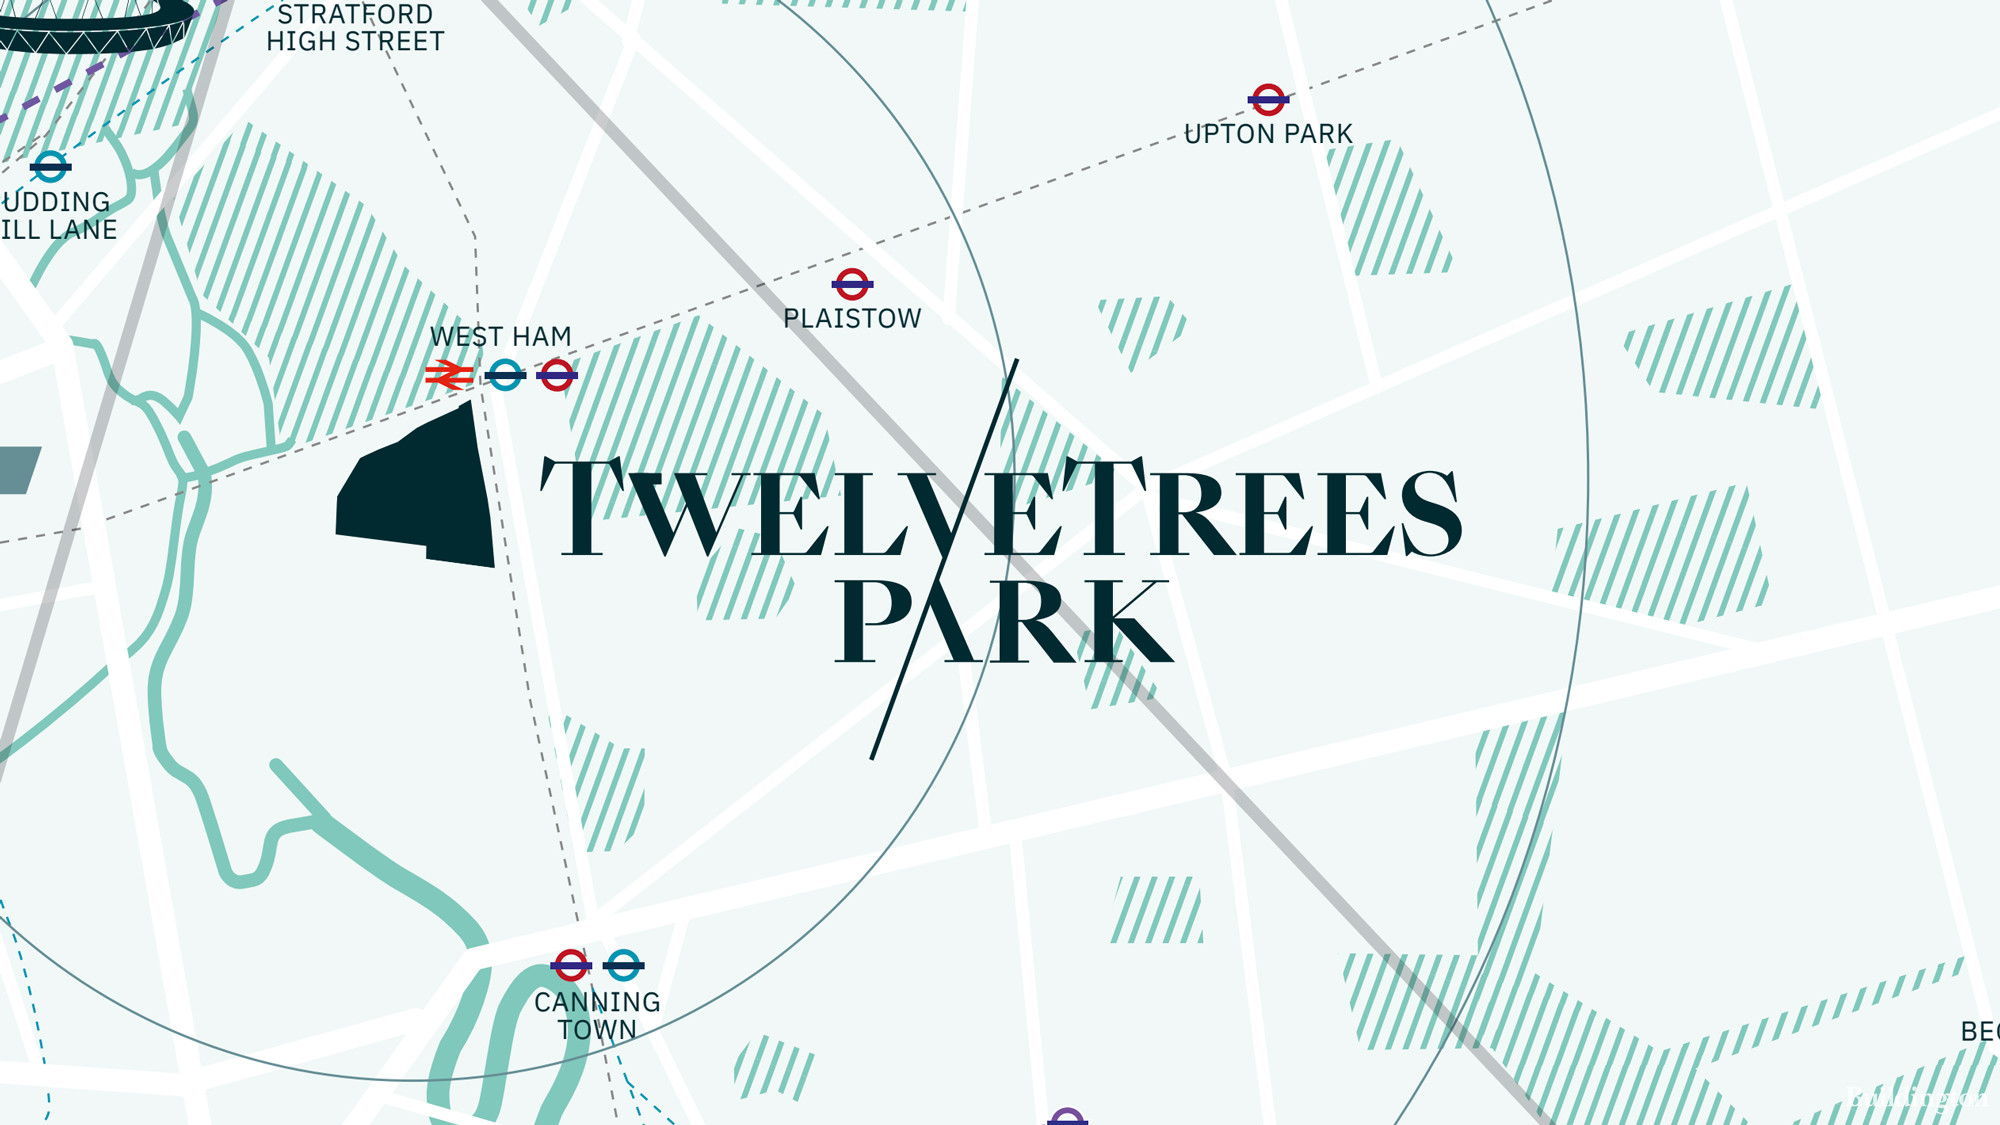 TwelveTrees Park development by Berkeley in West Ham, London E15. Screen capture from the development brochure available to download at berkeleygroup.co.uk.